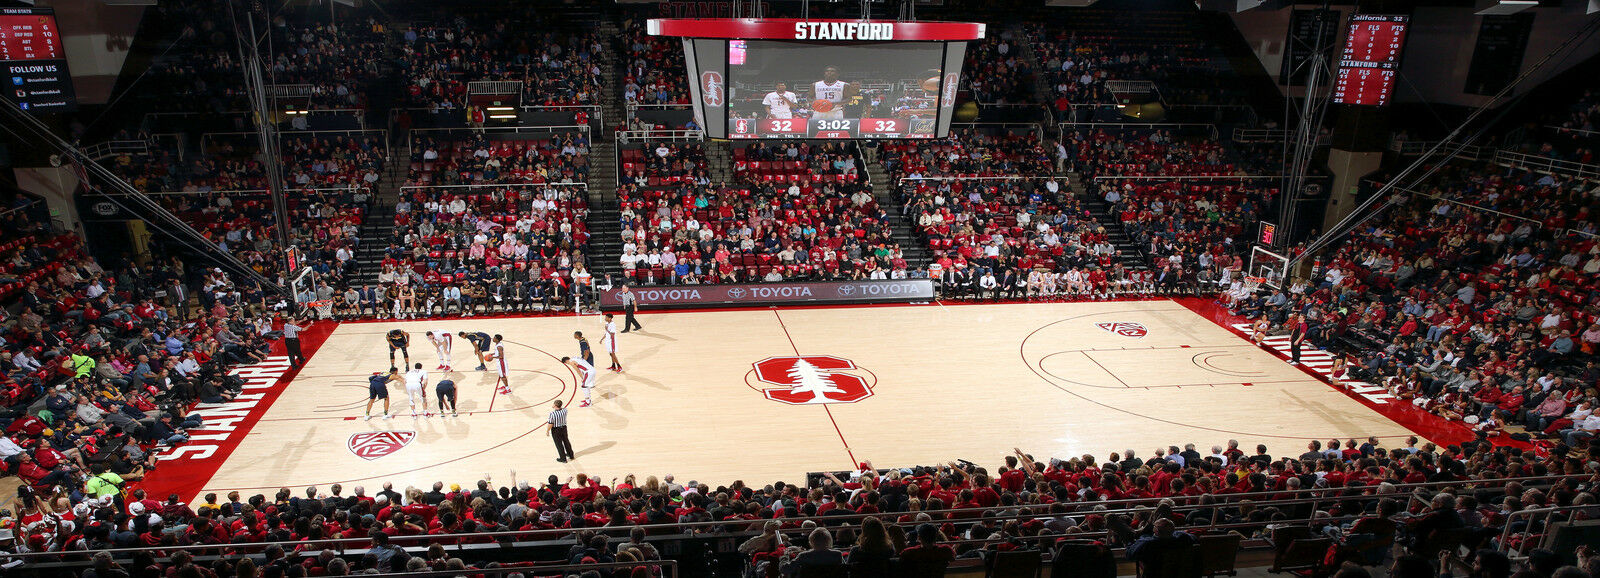 UC Riverside Highlanders at Stanford Cardinal Women's Basketball